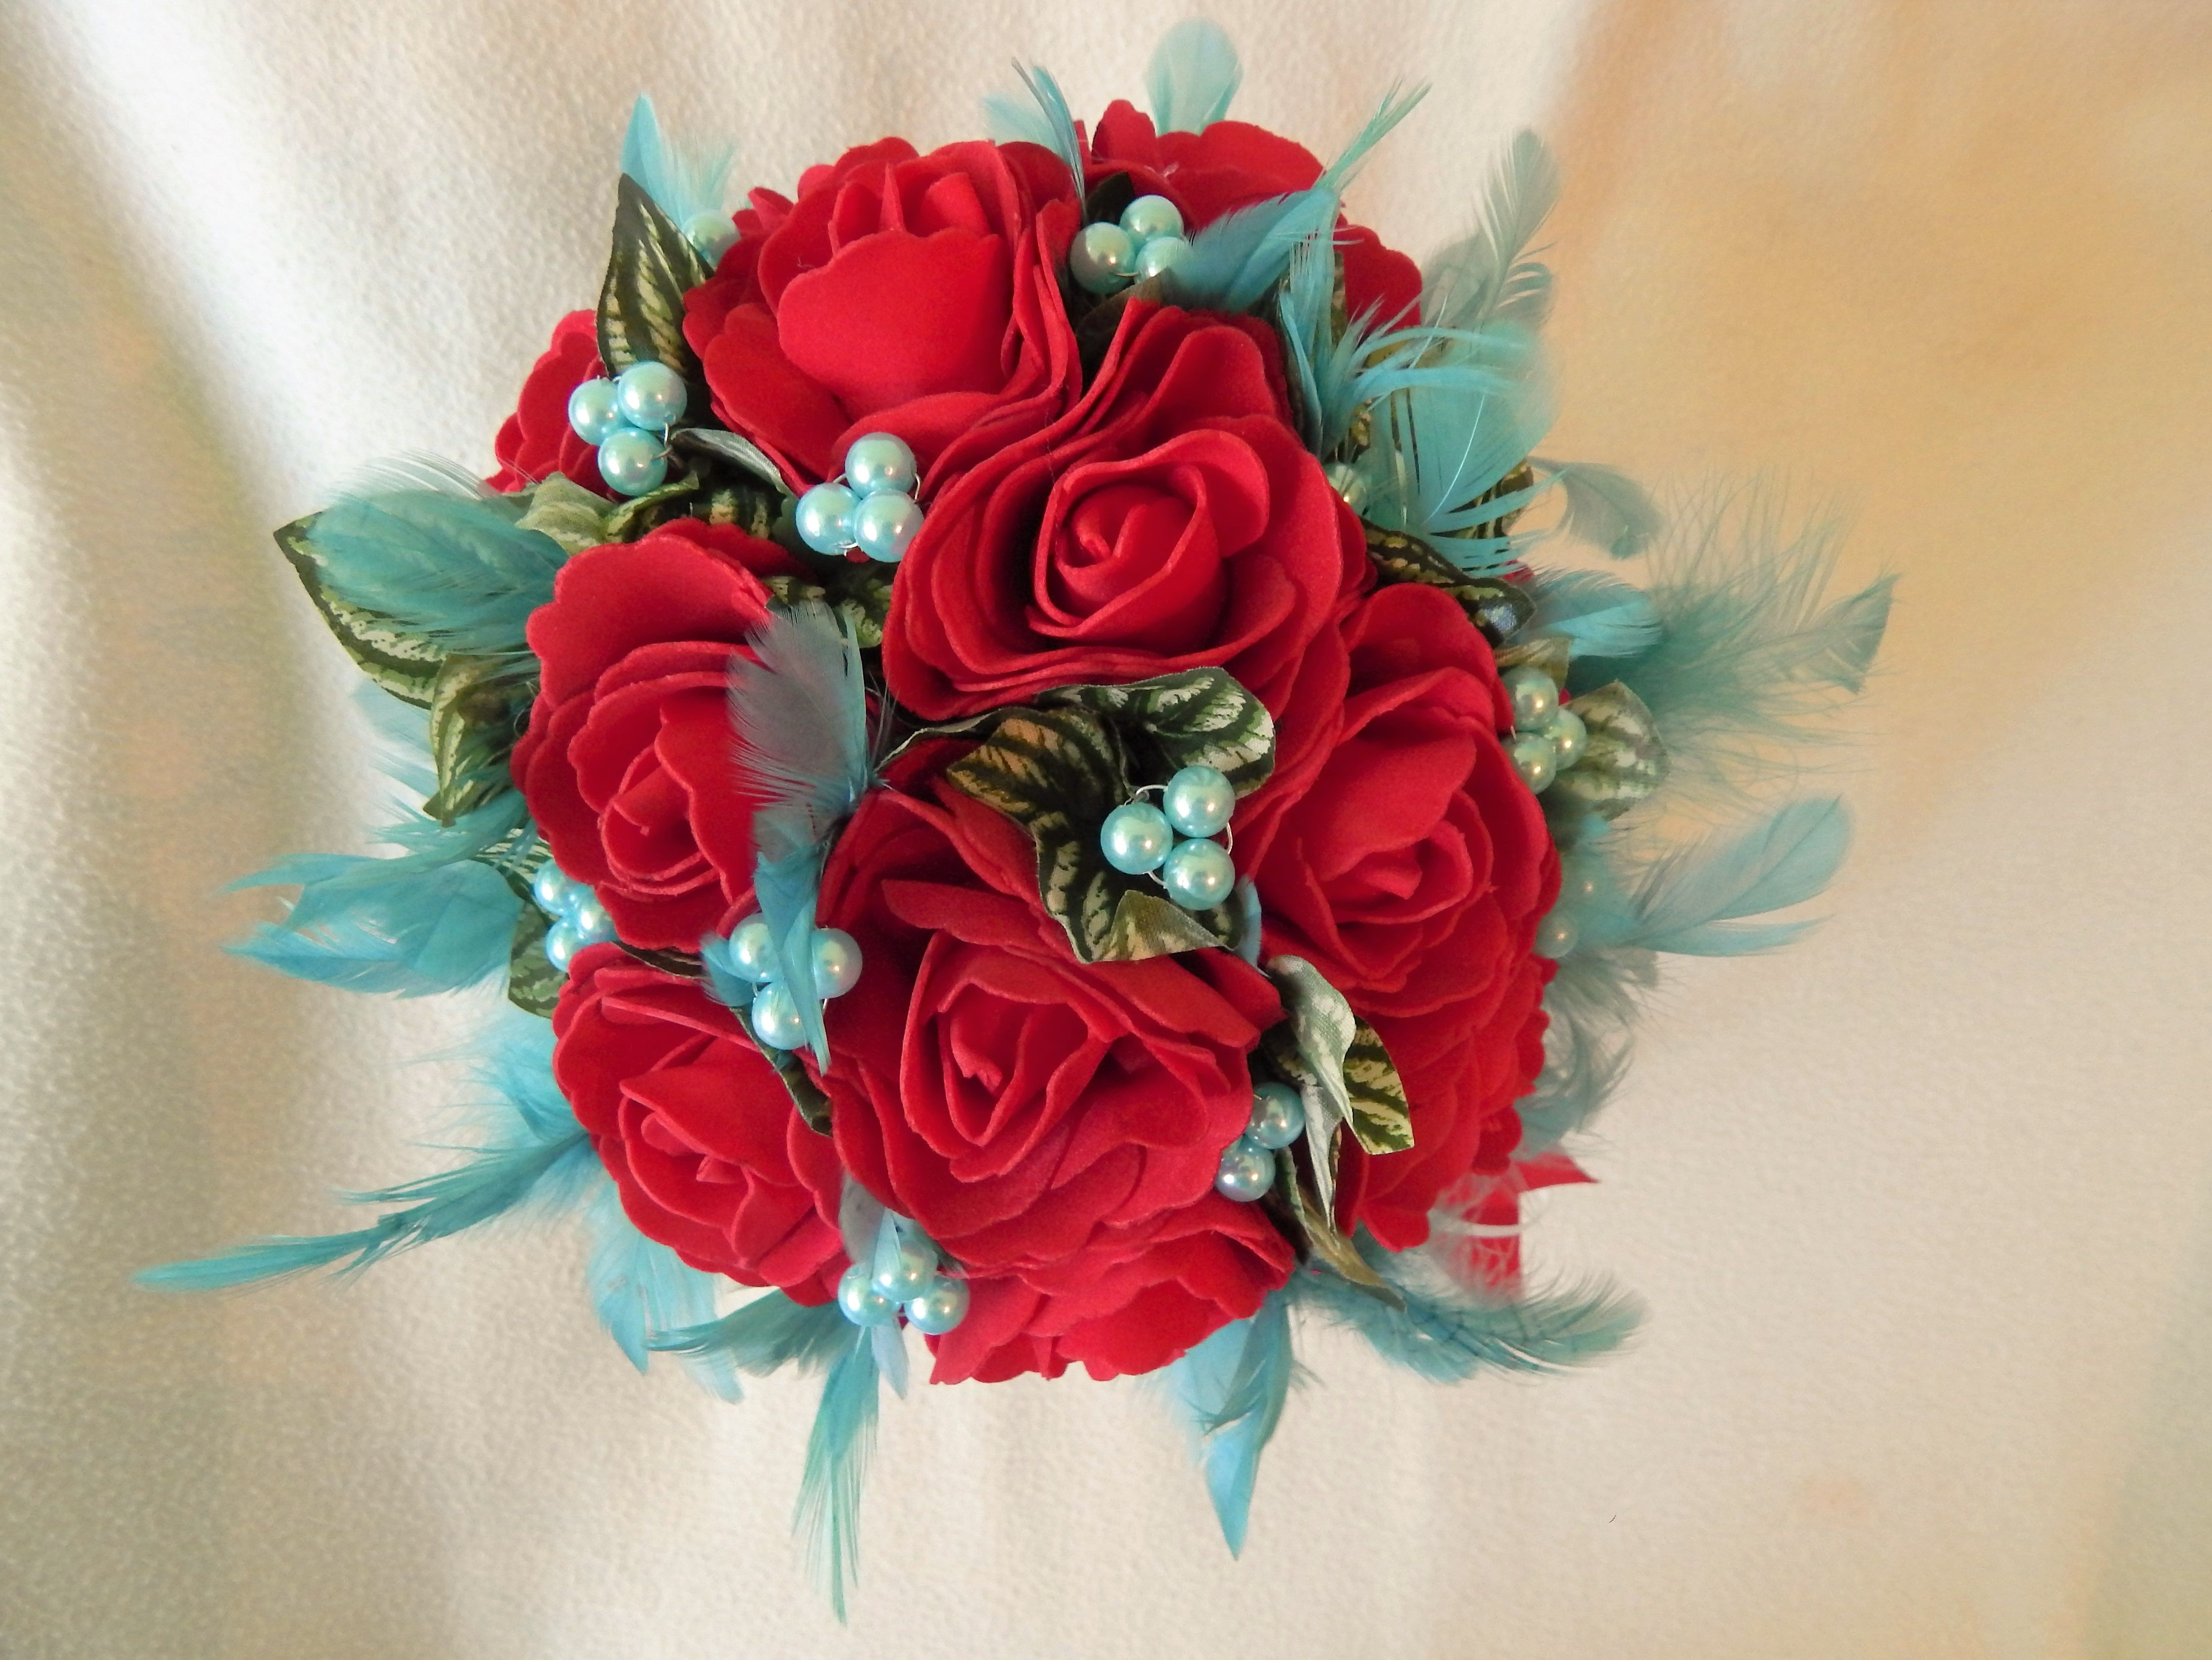 Beautiful handmade red and blue silk flower wedding bouquet us3664 beautiful handmade red and blue silk flower wedding bouquet us3664 mightylinksfo